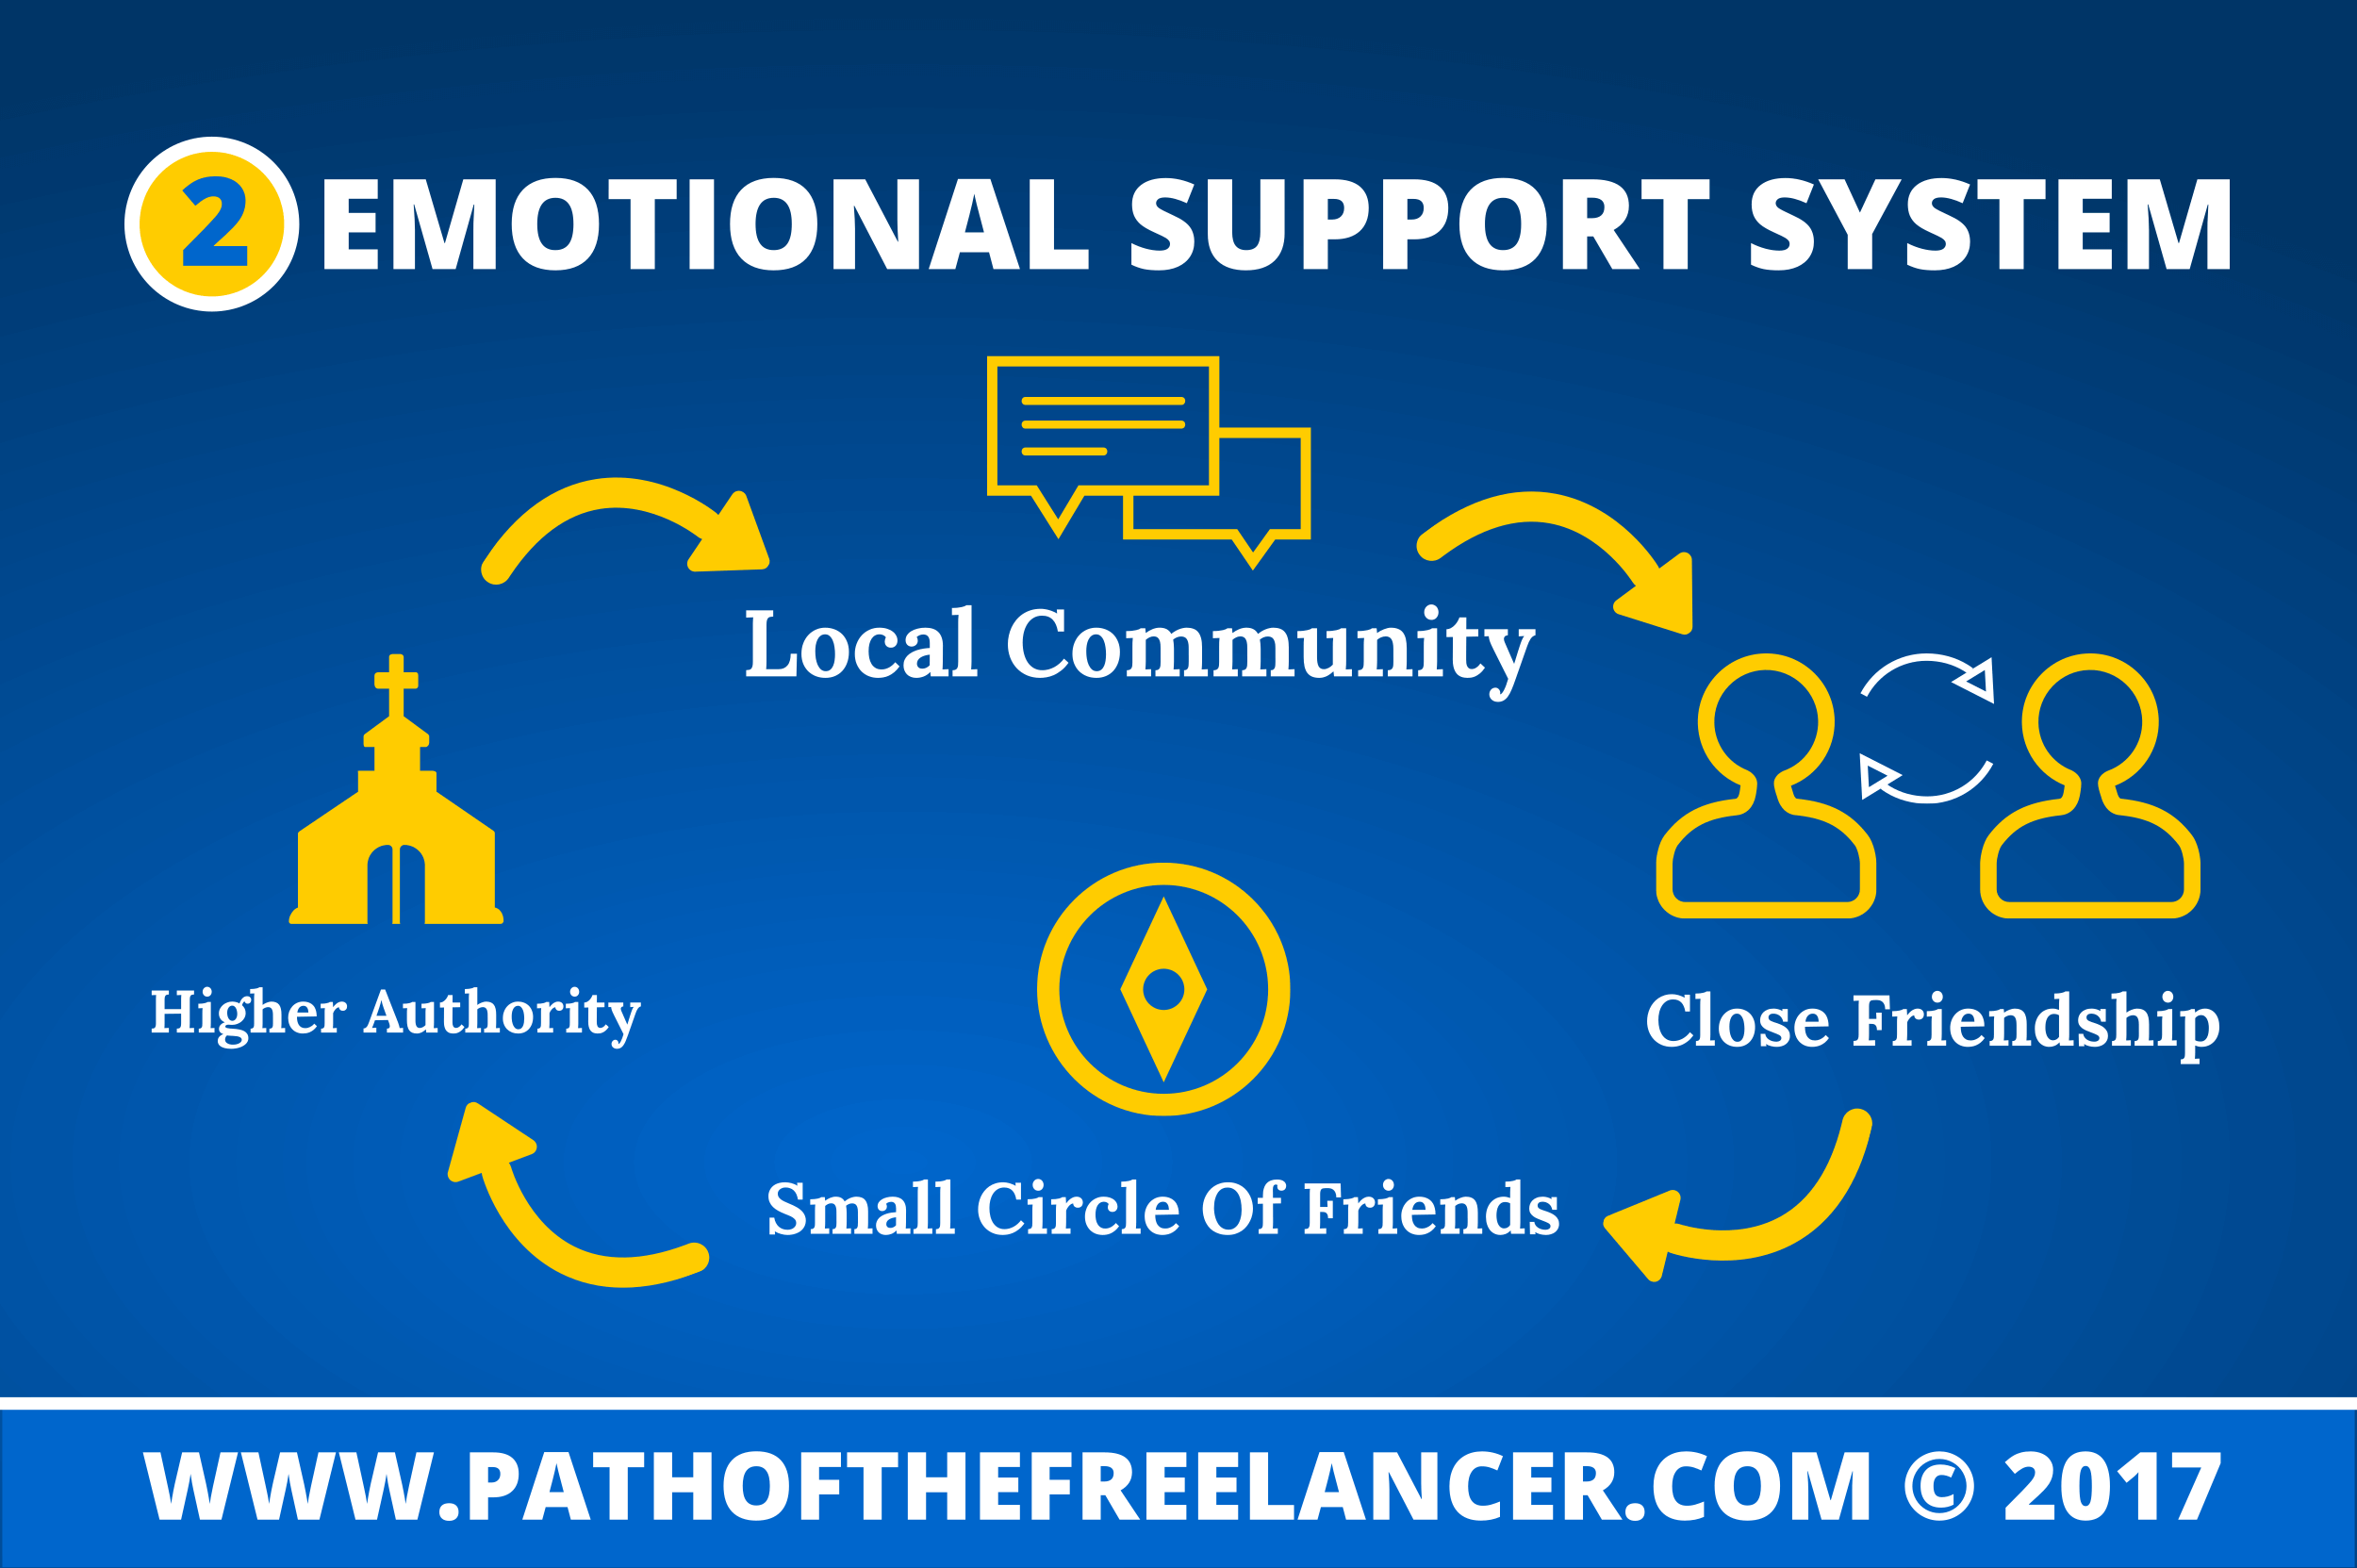 Emotional Support System Infographic